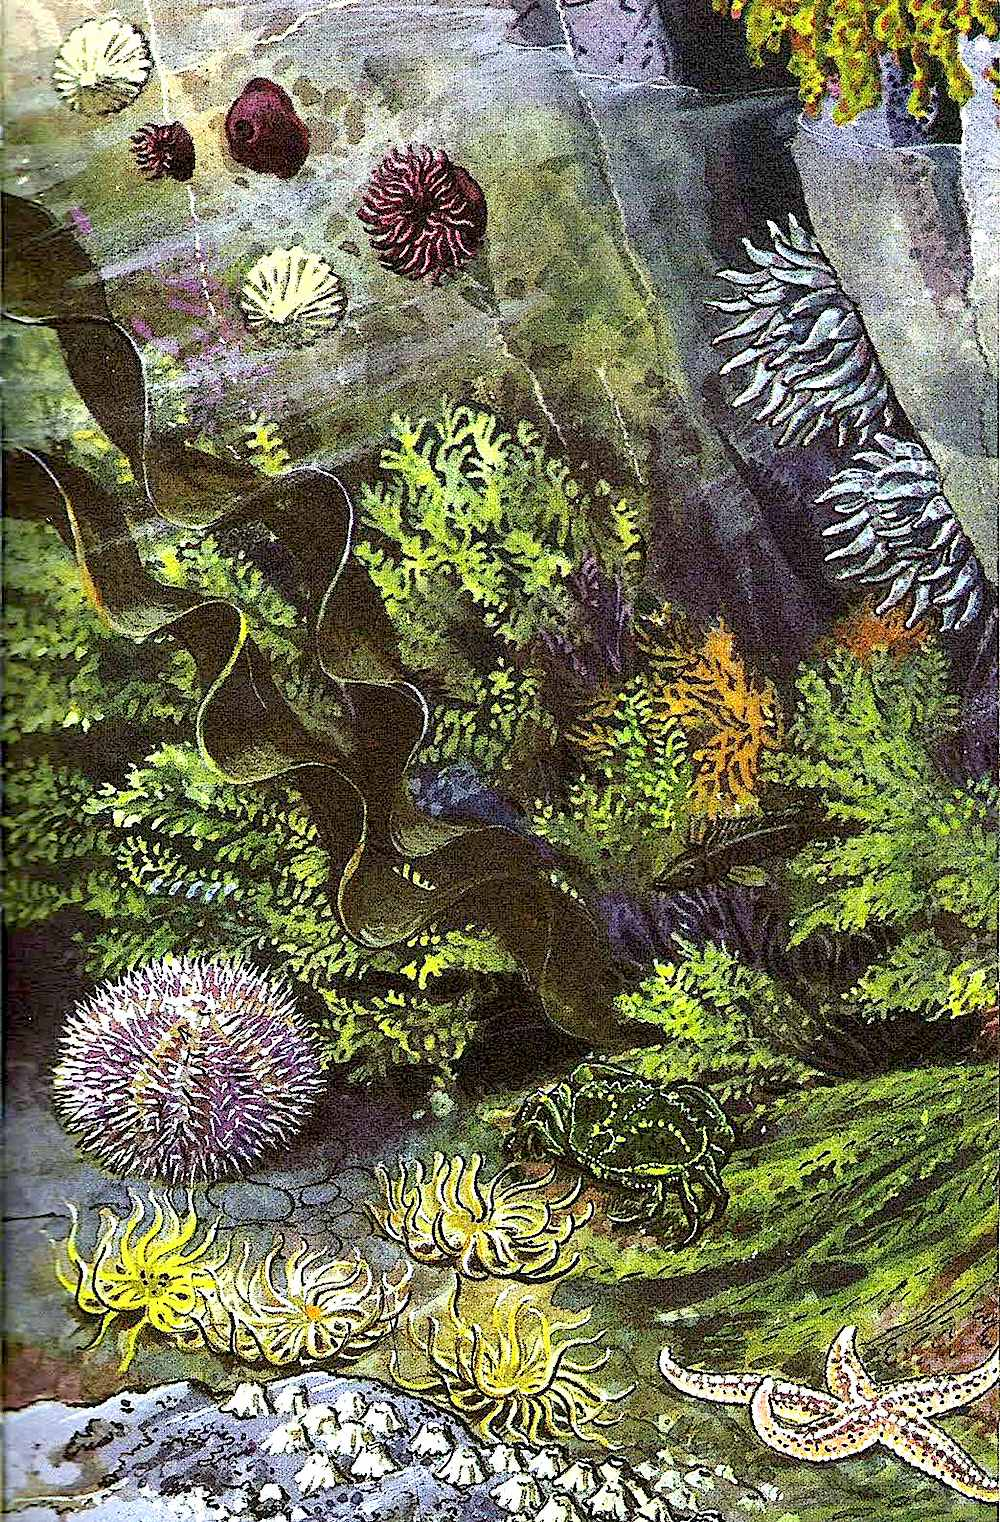 a Charles F. Tunnicliffe illustration of underwater plant life